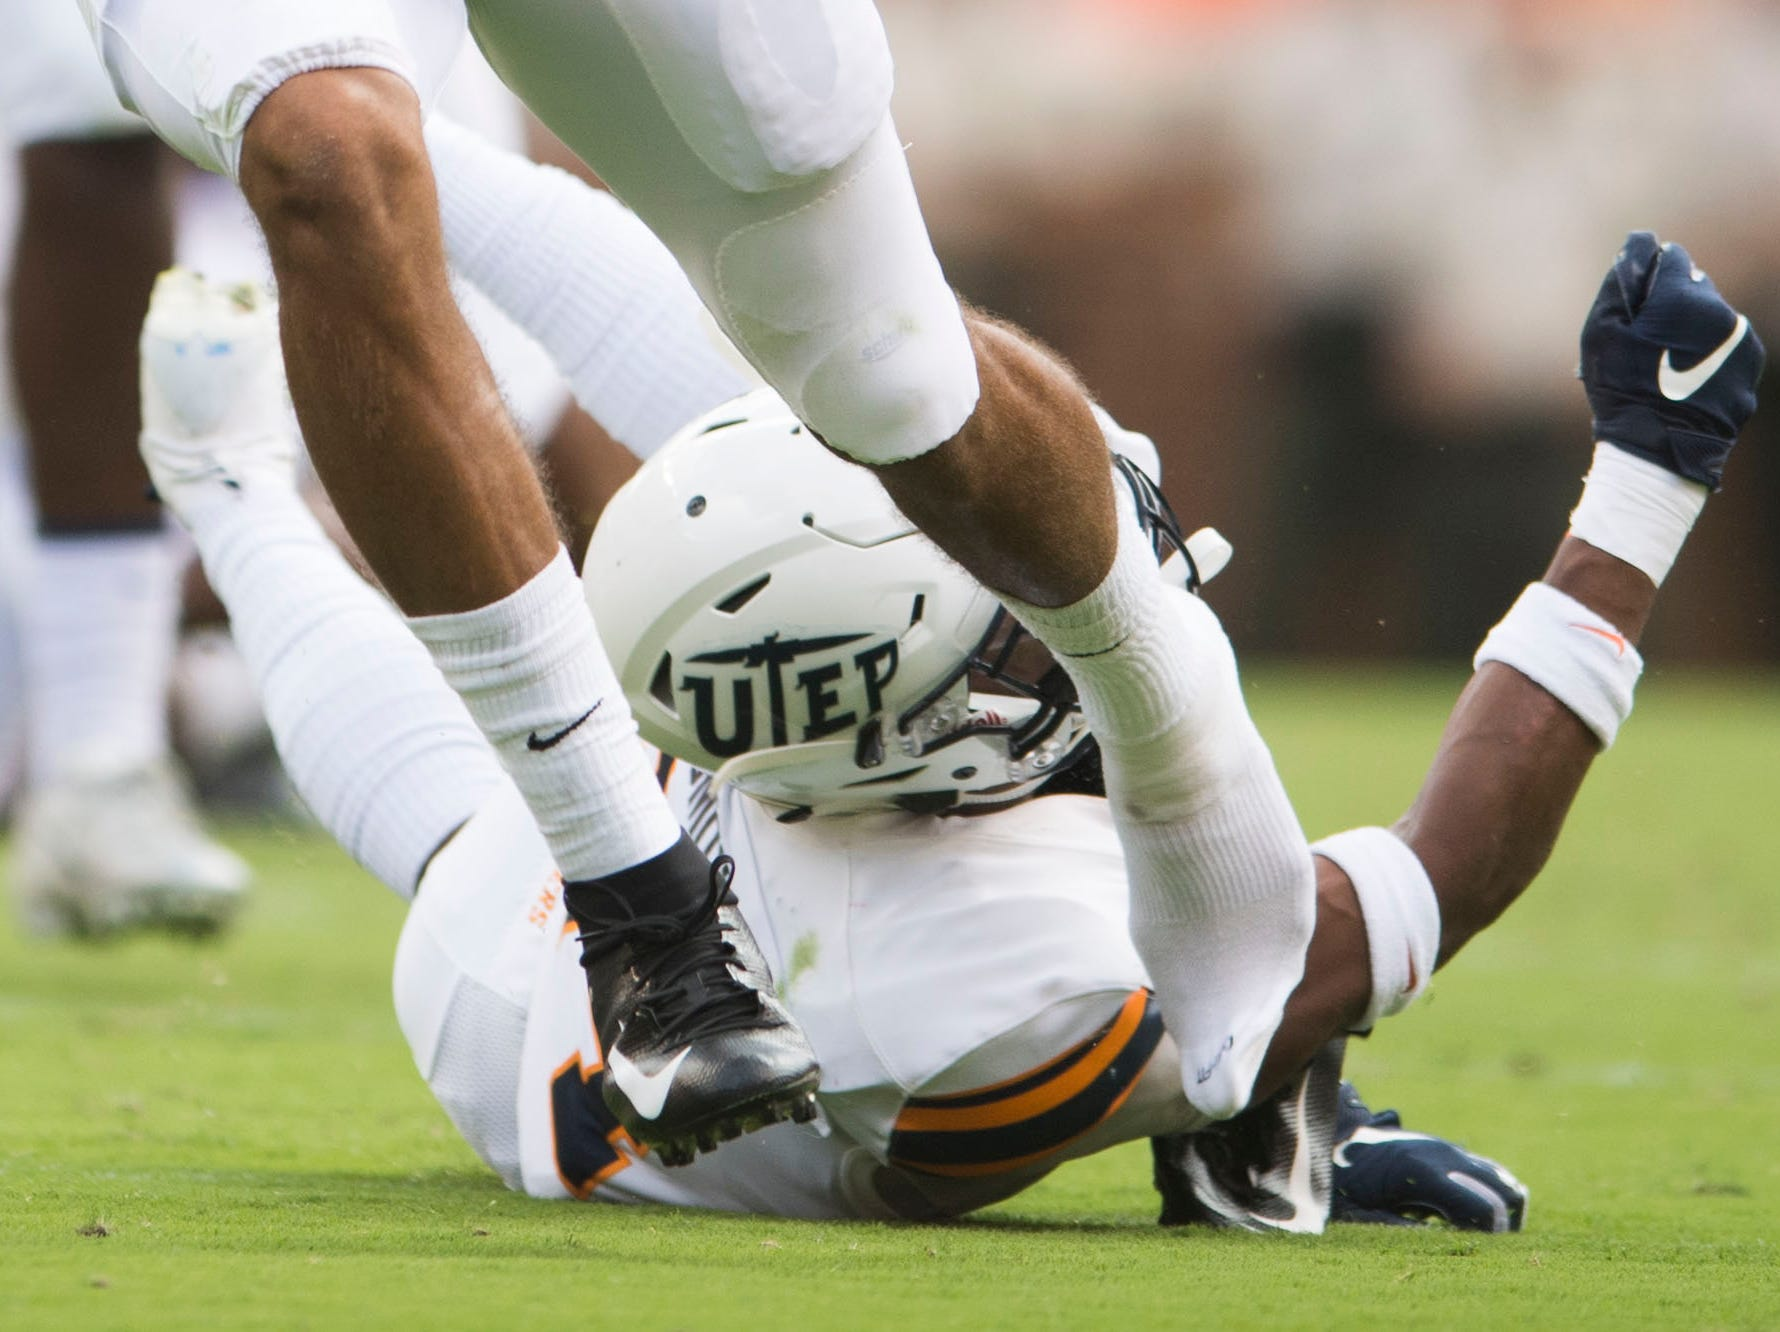 Tennessee quarterback Jarrett Guarantano (2) runs on the field after his shoe fell off during a game between UT and UTEP in Neyland Stadium Sept. 15, 2018.